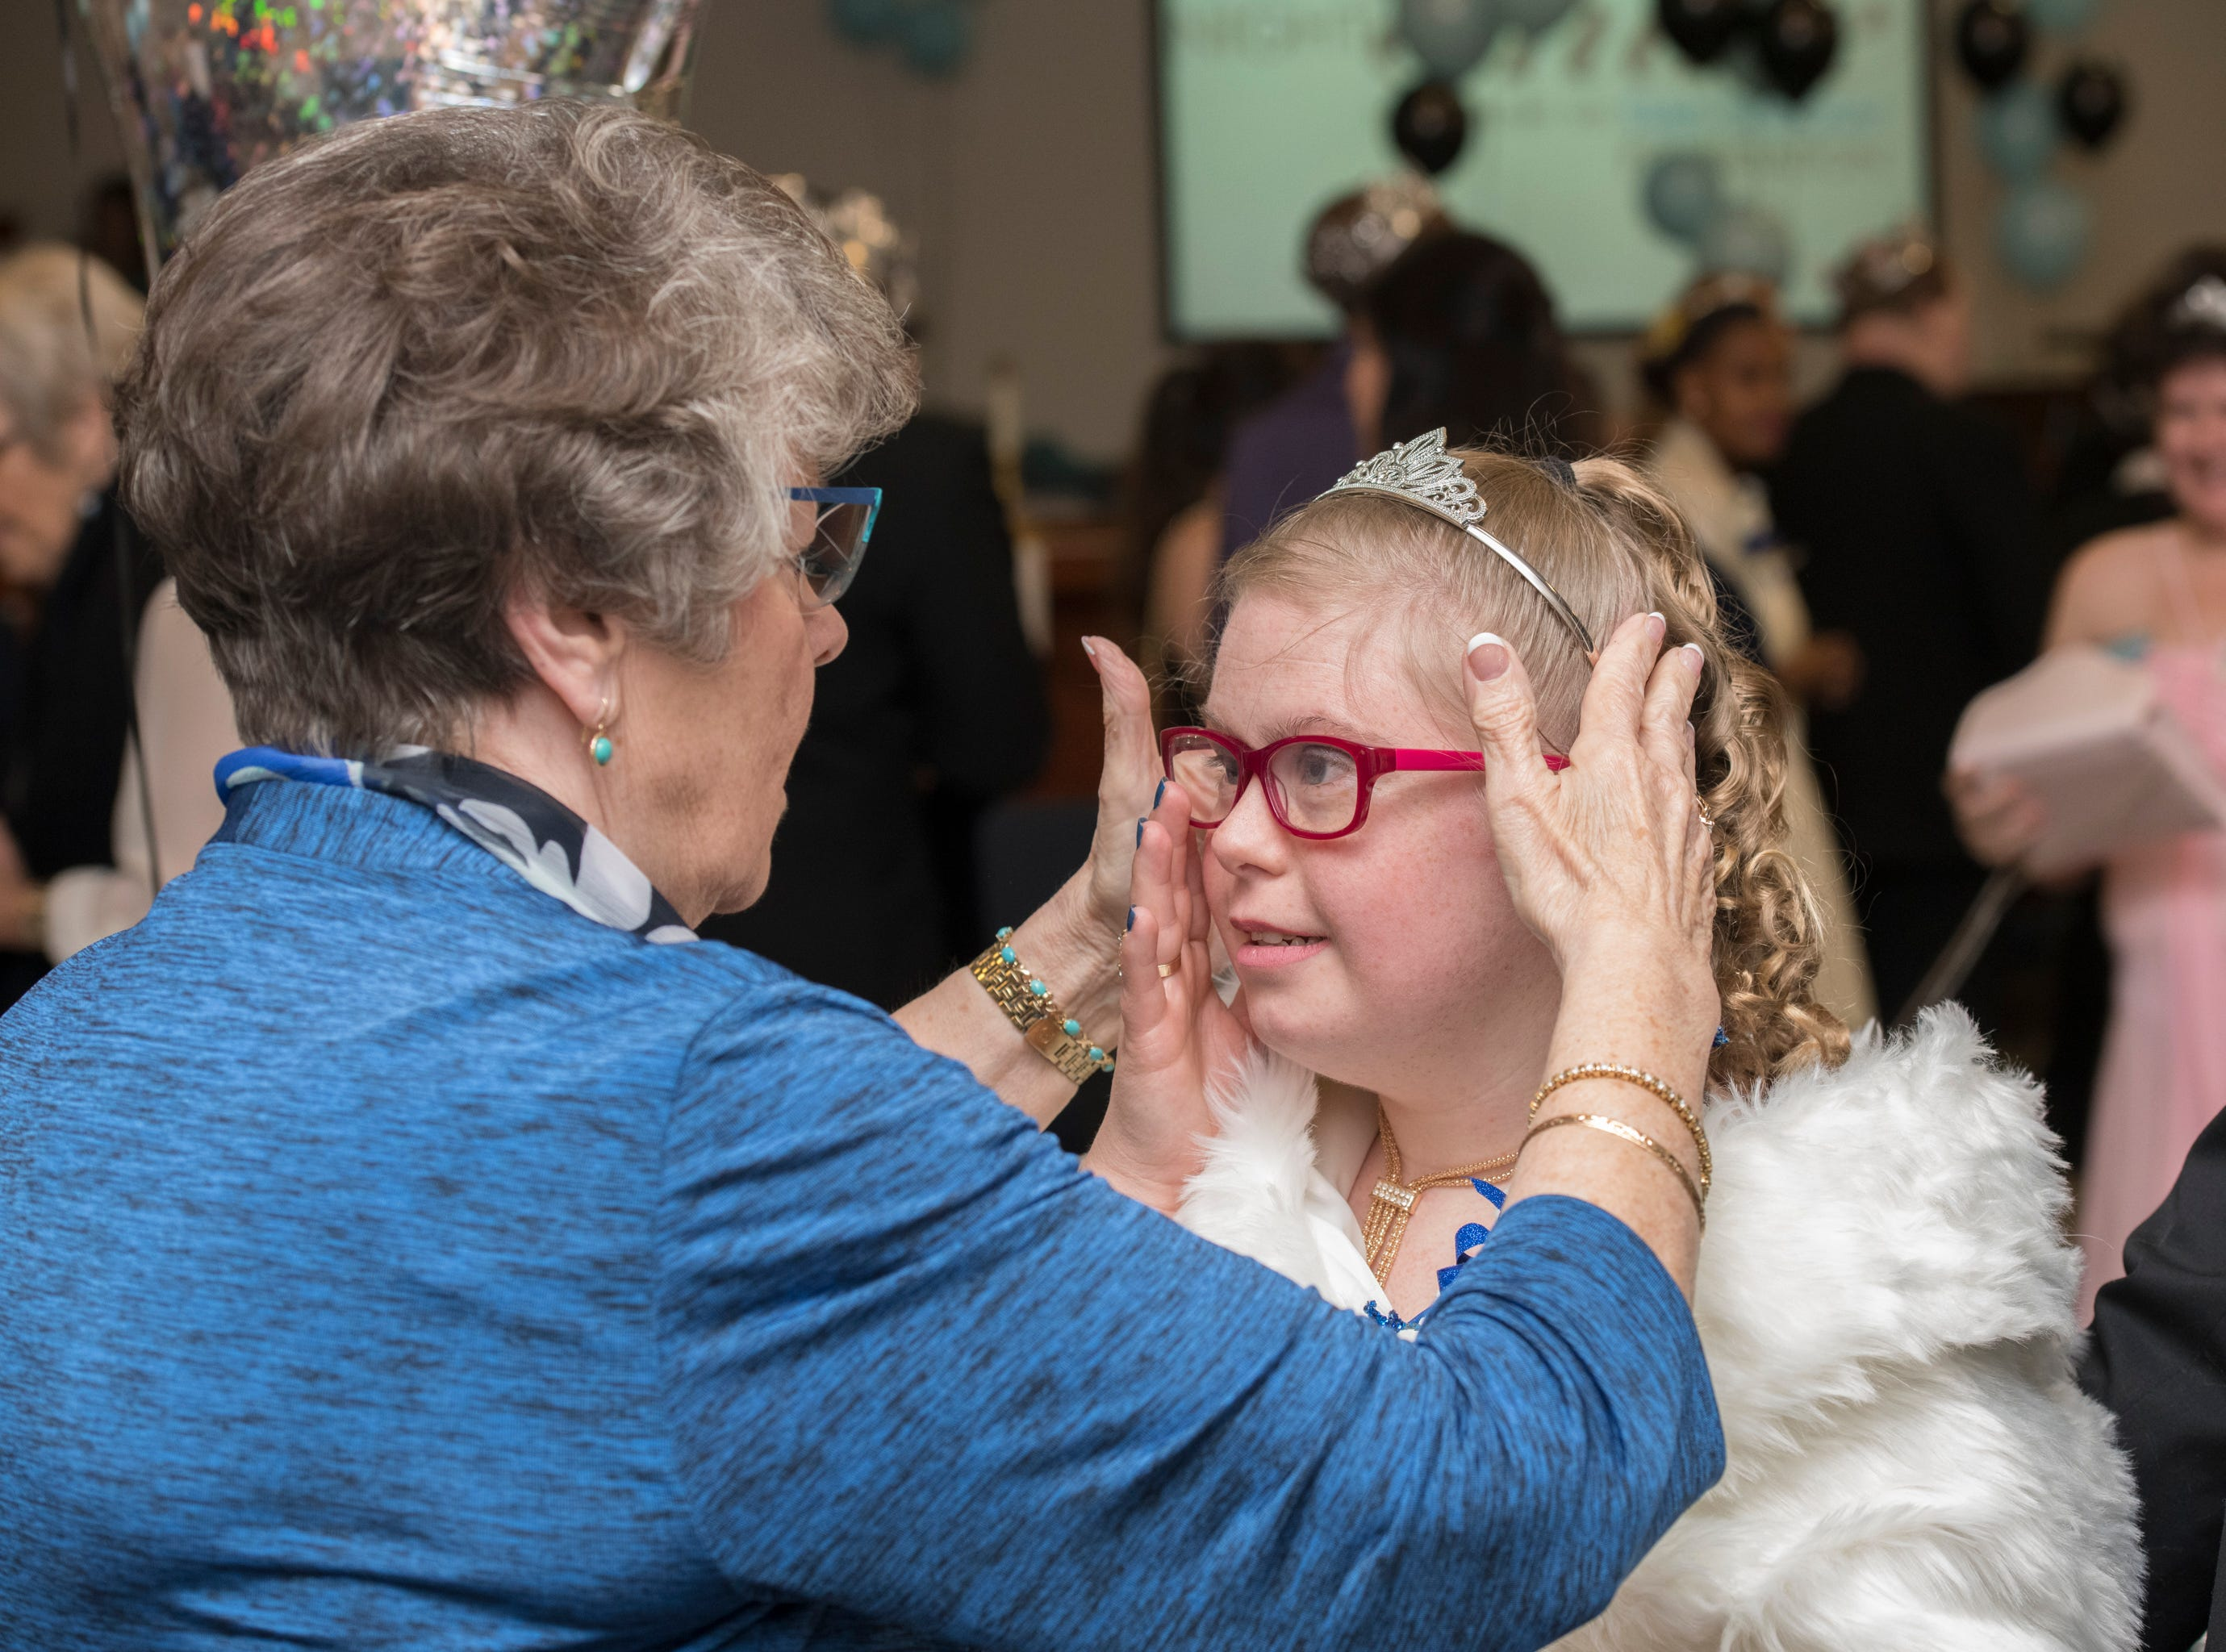 Kaitlyn Evans has her tiara adjusted at the beginning of the Night to Shine prom for people with special needs sponsored by the Tim Tebow Foundation at Perdido Bay United Methodist Church in Pensacola on Friday, February 8, 2019.